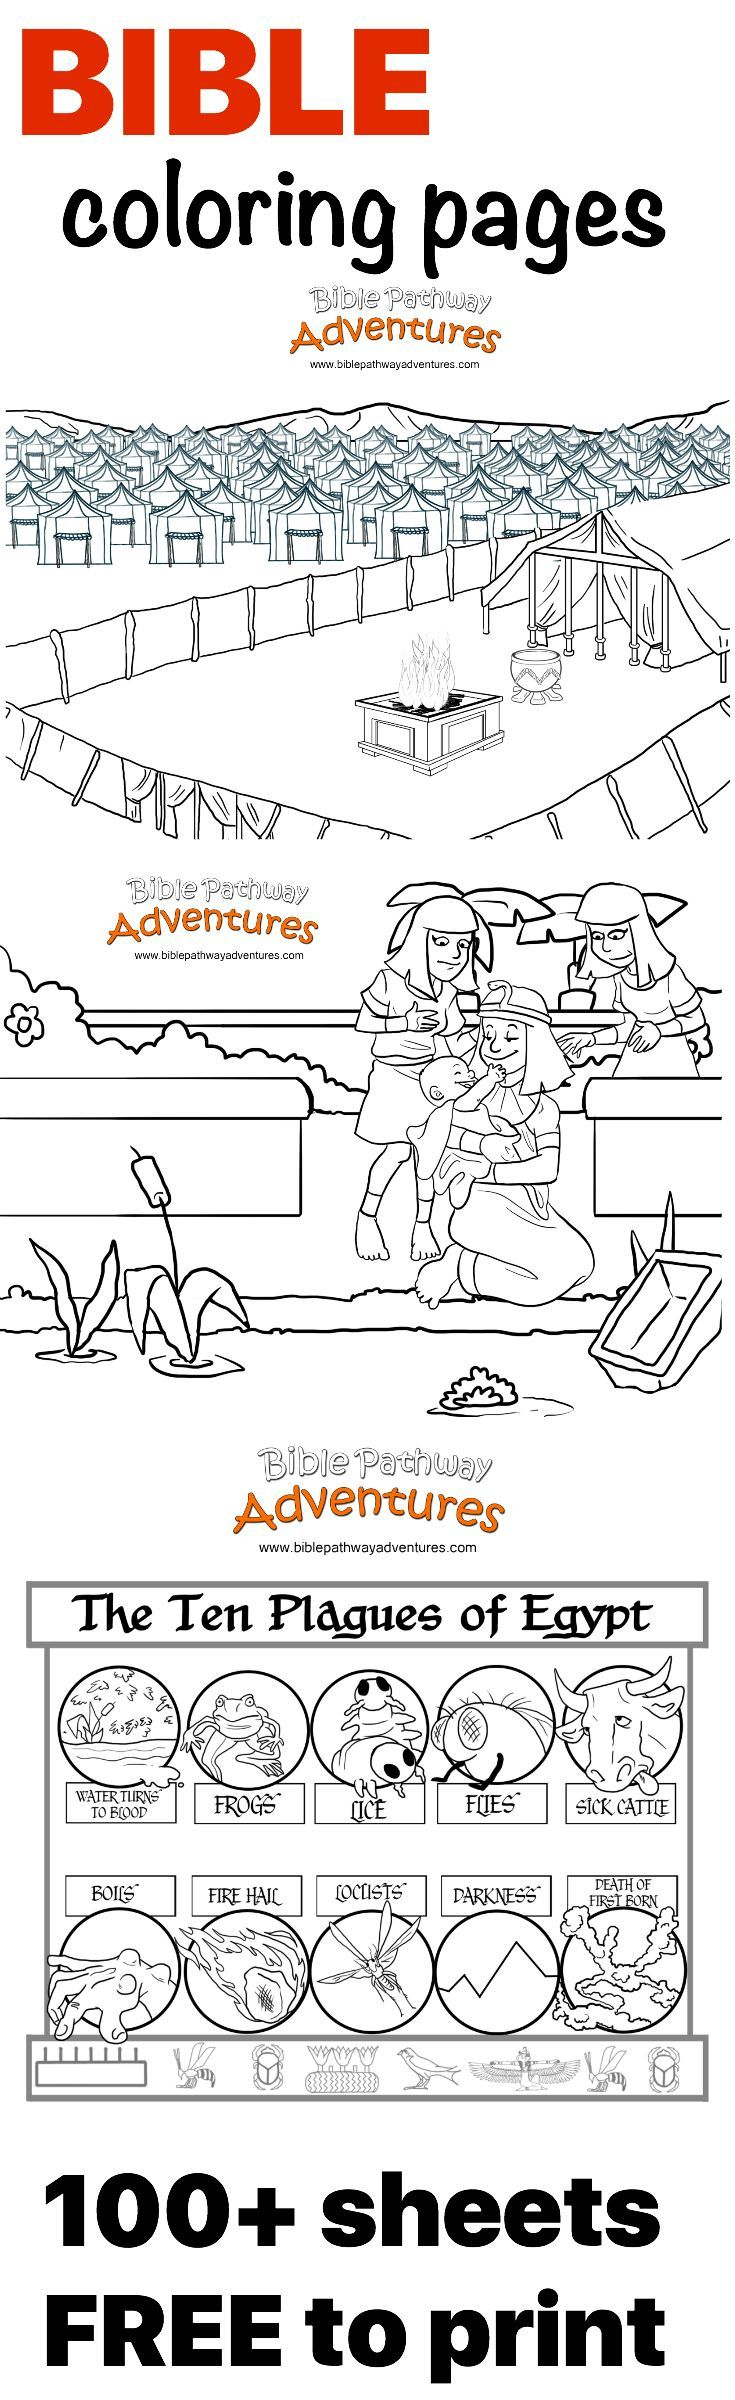 Free bible activities for kids free bible worksheets and bible